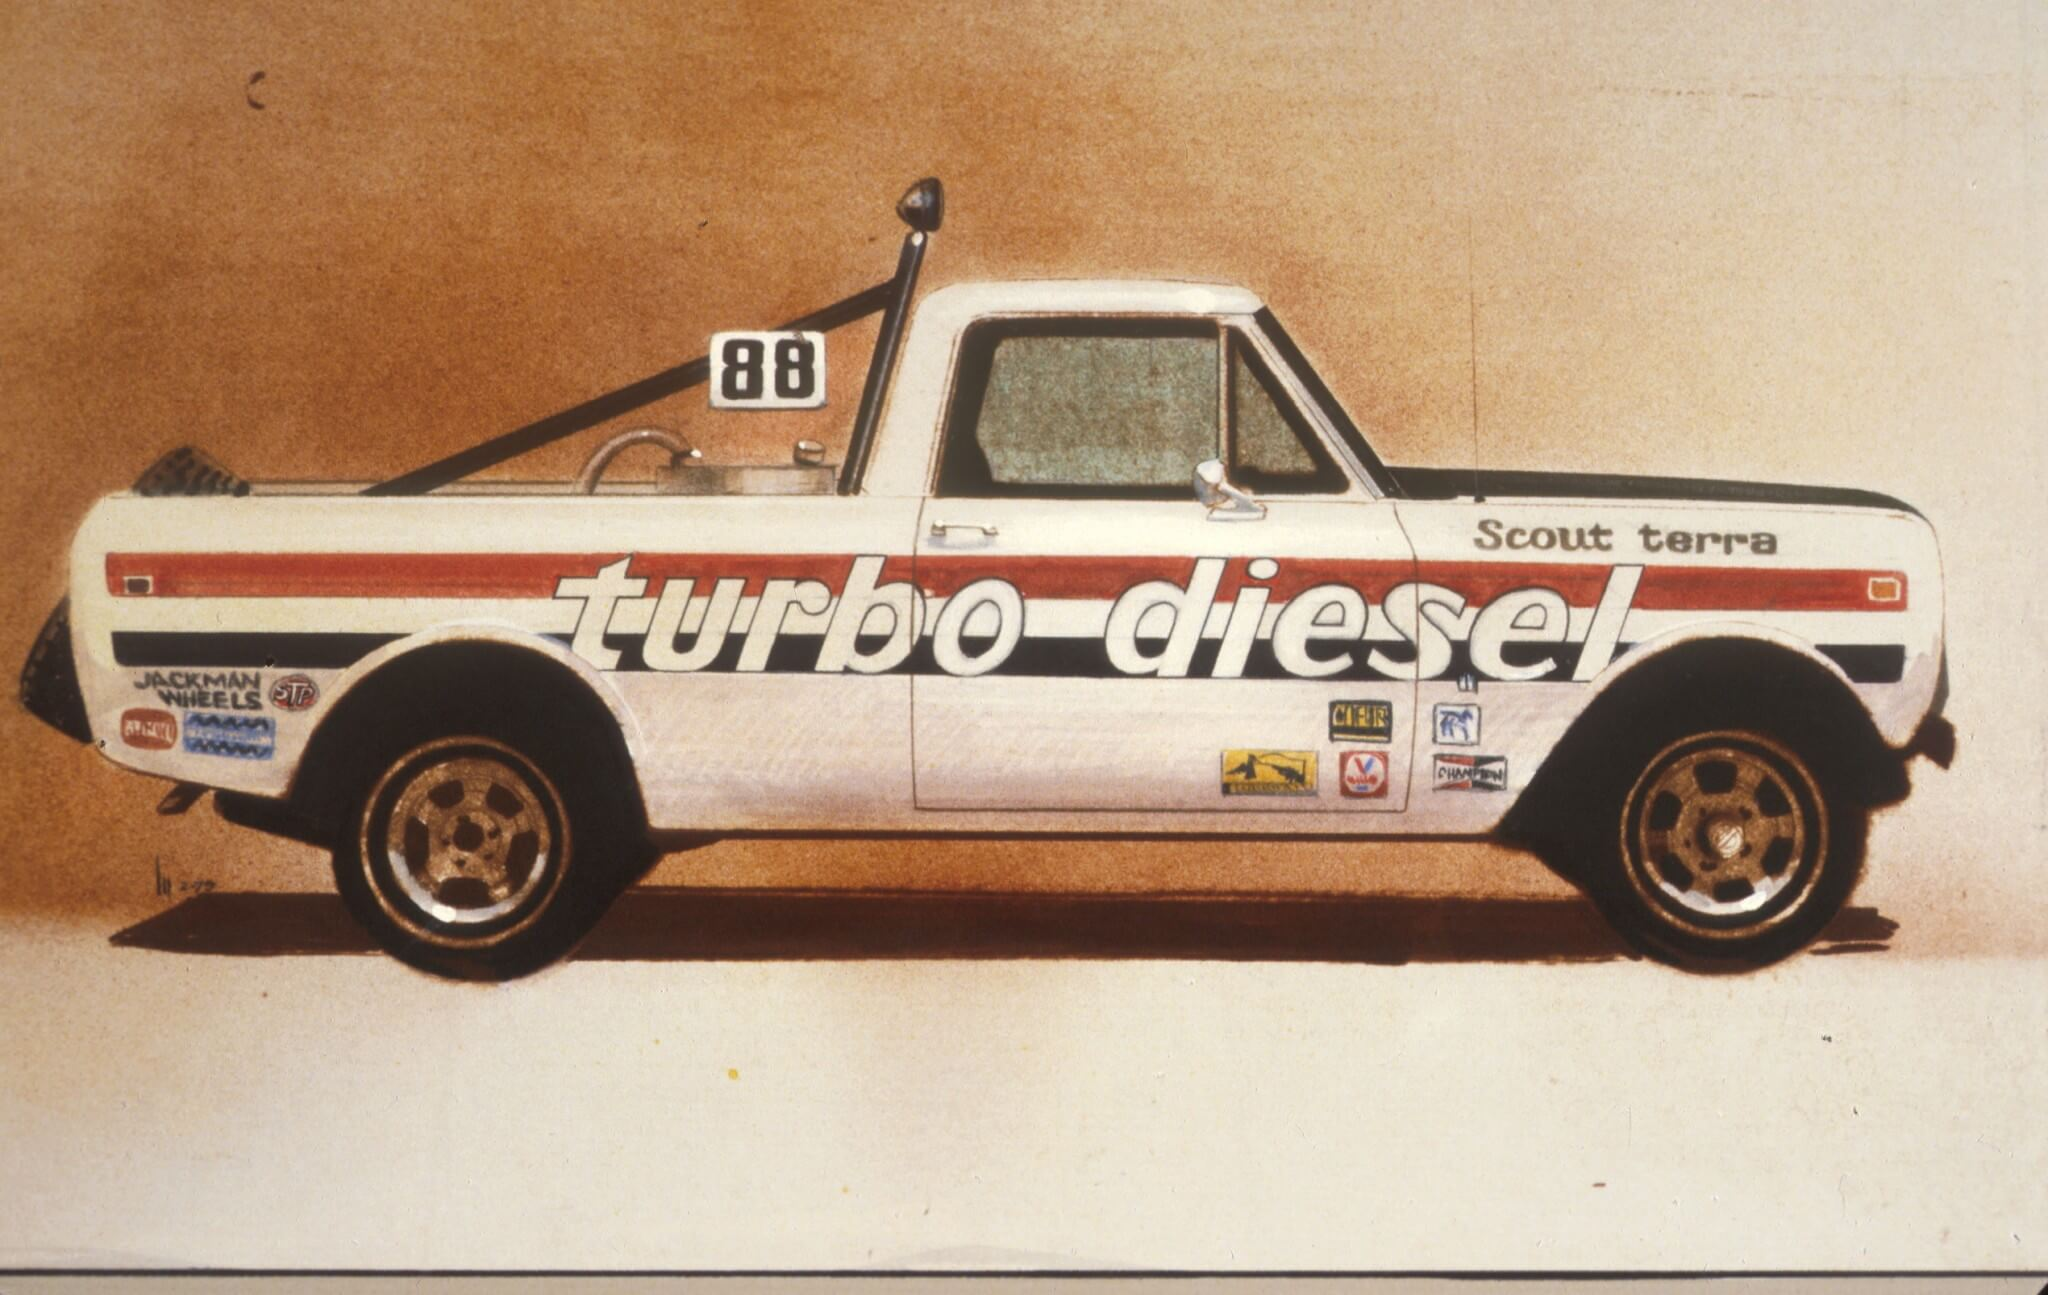 When the turbo diesel debuted, several Scout racers jumped on the bandwagon. Jimmy Jones, Jerry Boone and Sherman Balch all ran turbodiesel Scouts in the Baja 500 and 1000 races into the early 1980s. According to a magazine article of the era, in 1979 Jimmy Jones was the first person to finish the Baja 1000 race in a diesel-powered vehicle, and his Scout was also the first turbocharged vehicle to race. He set a record for the lowest fuel expenditure to that time, spending a mere $30 run the 1,000 miles.